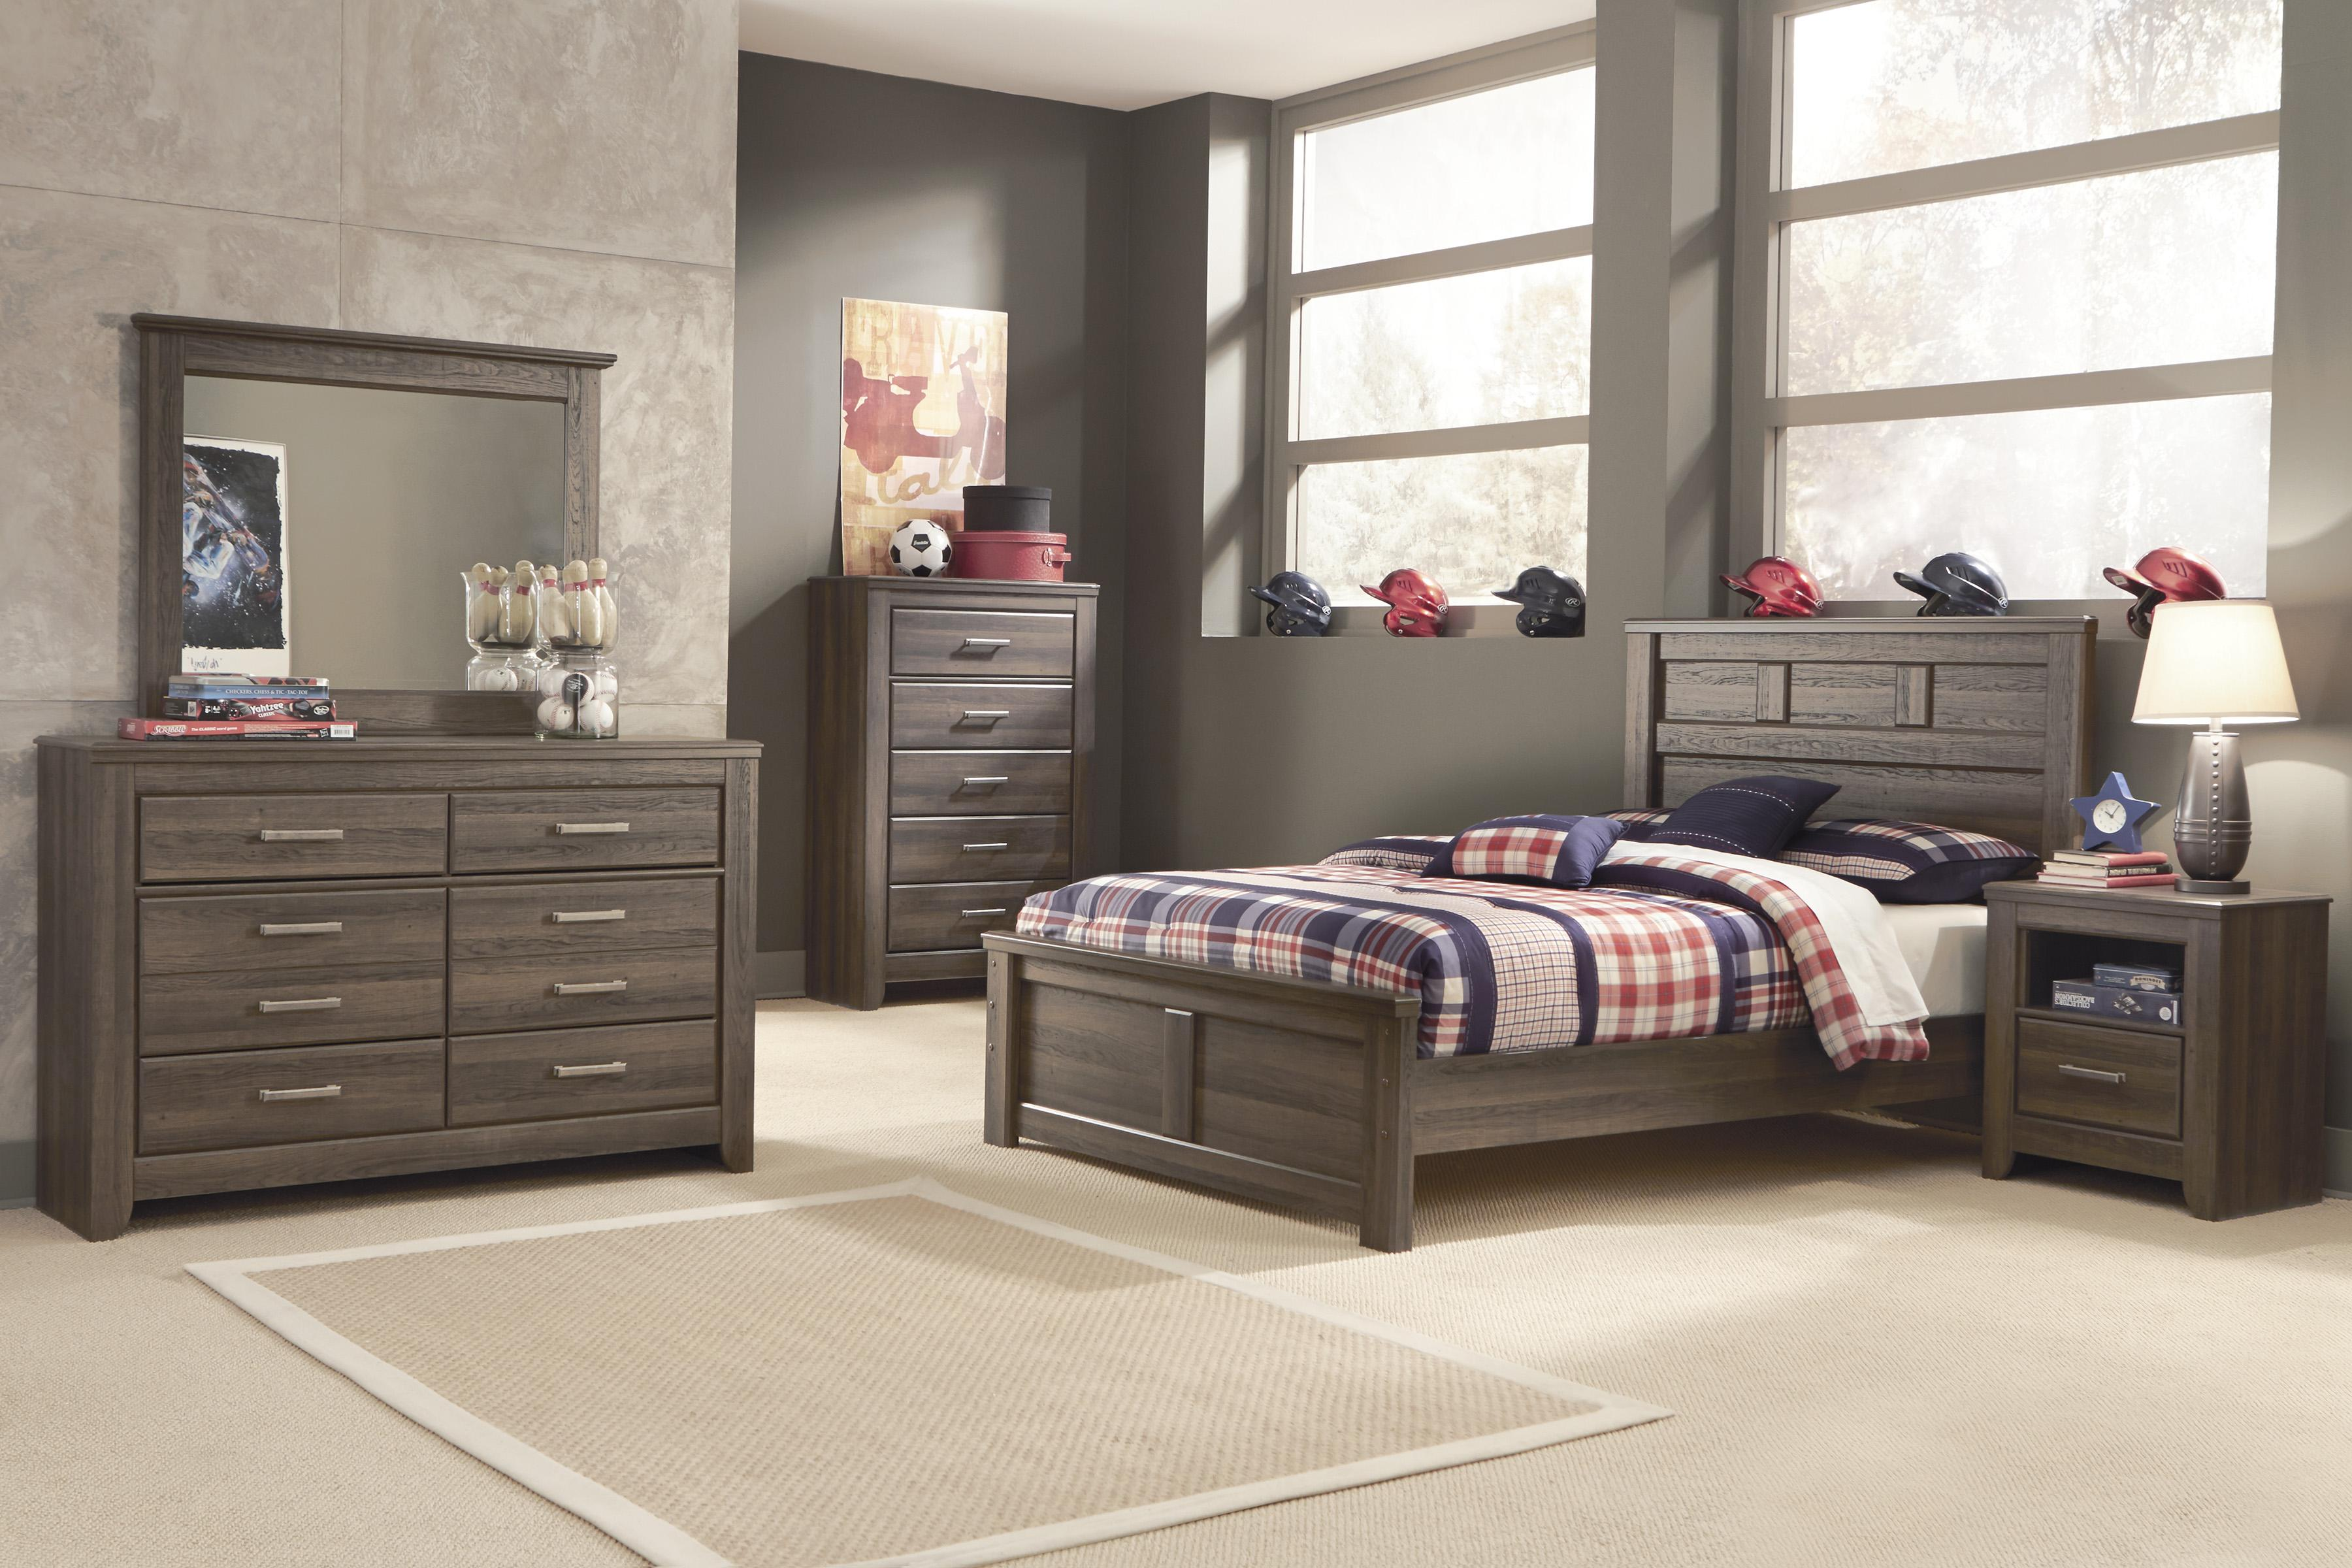 signature design by ashley juararo full bedroom group royal furniture bedroom groups. Black Bedroom Furniture Sets. Home Design Ideas